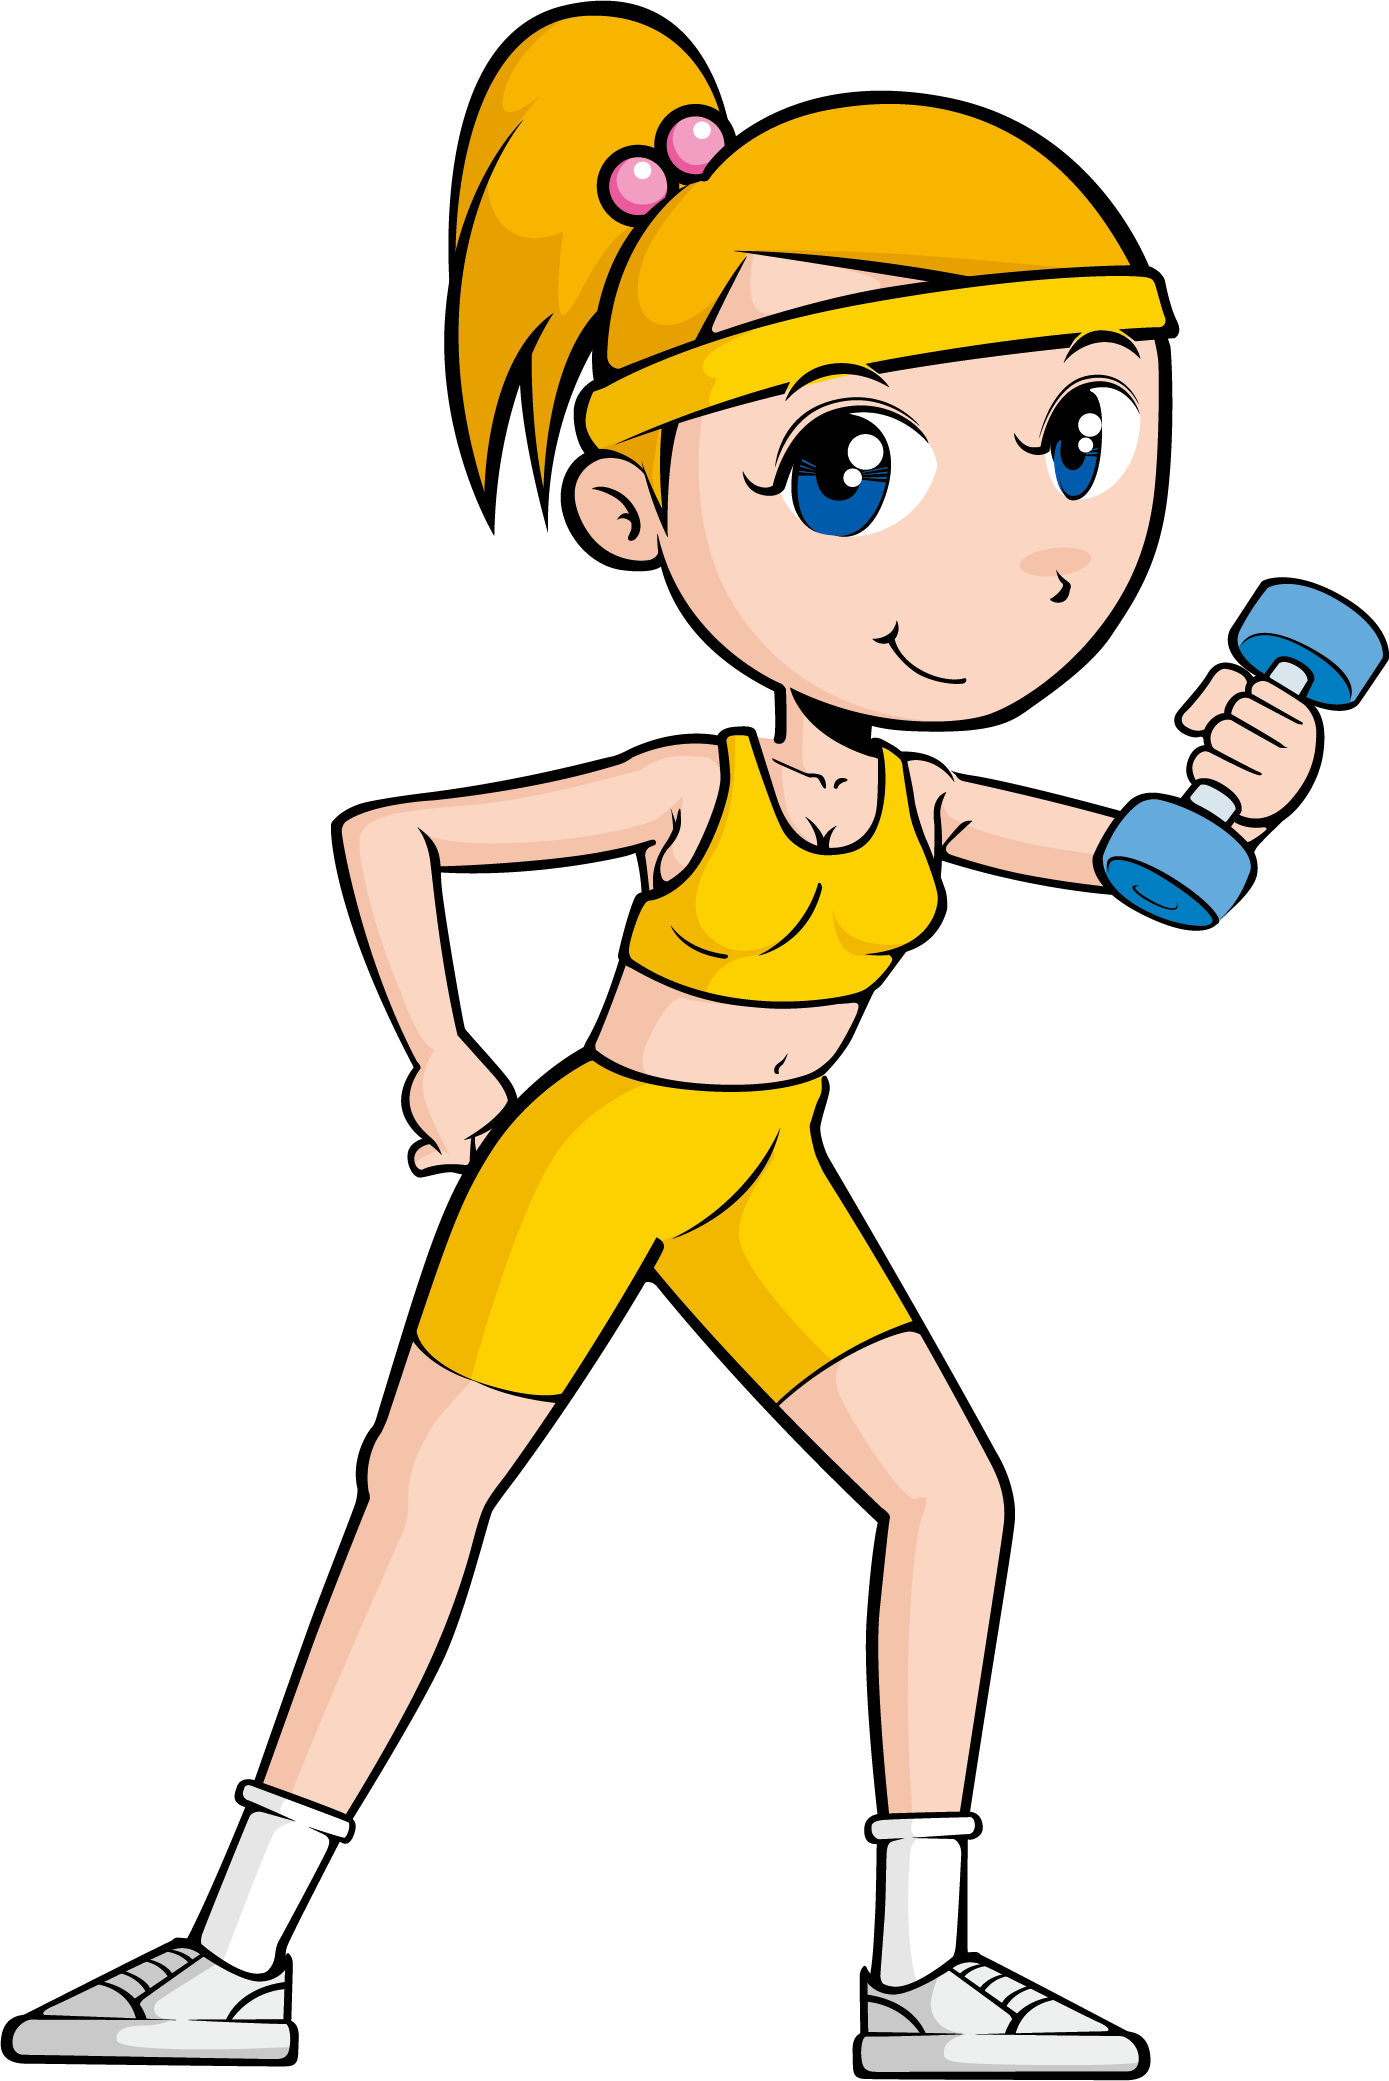 Gym clipart physical fitness. Exercise cartoon clip art